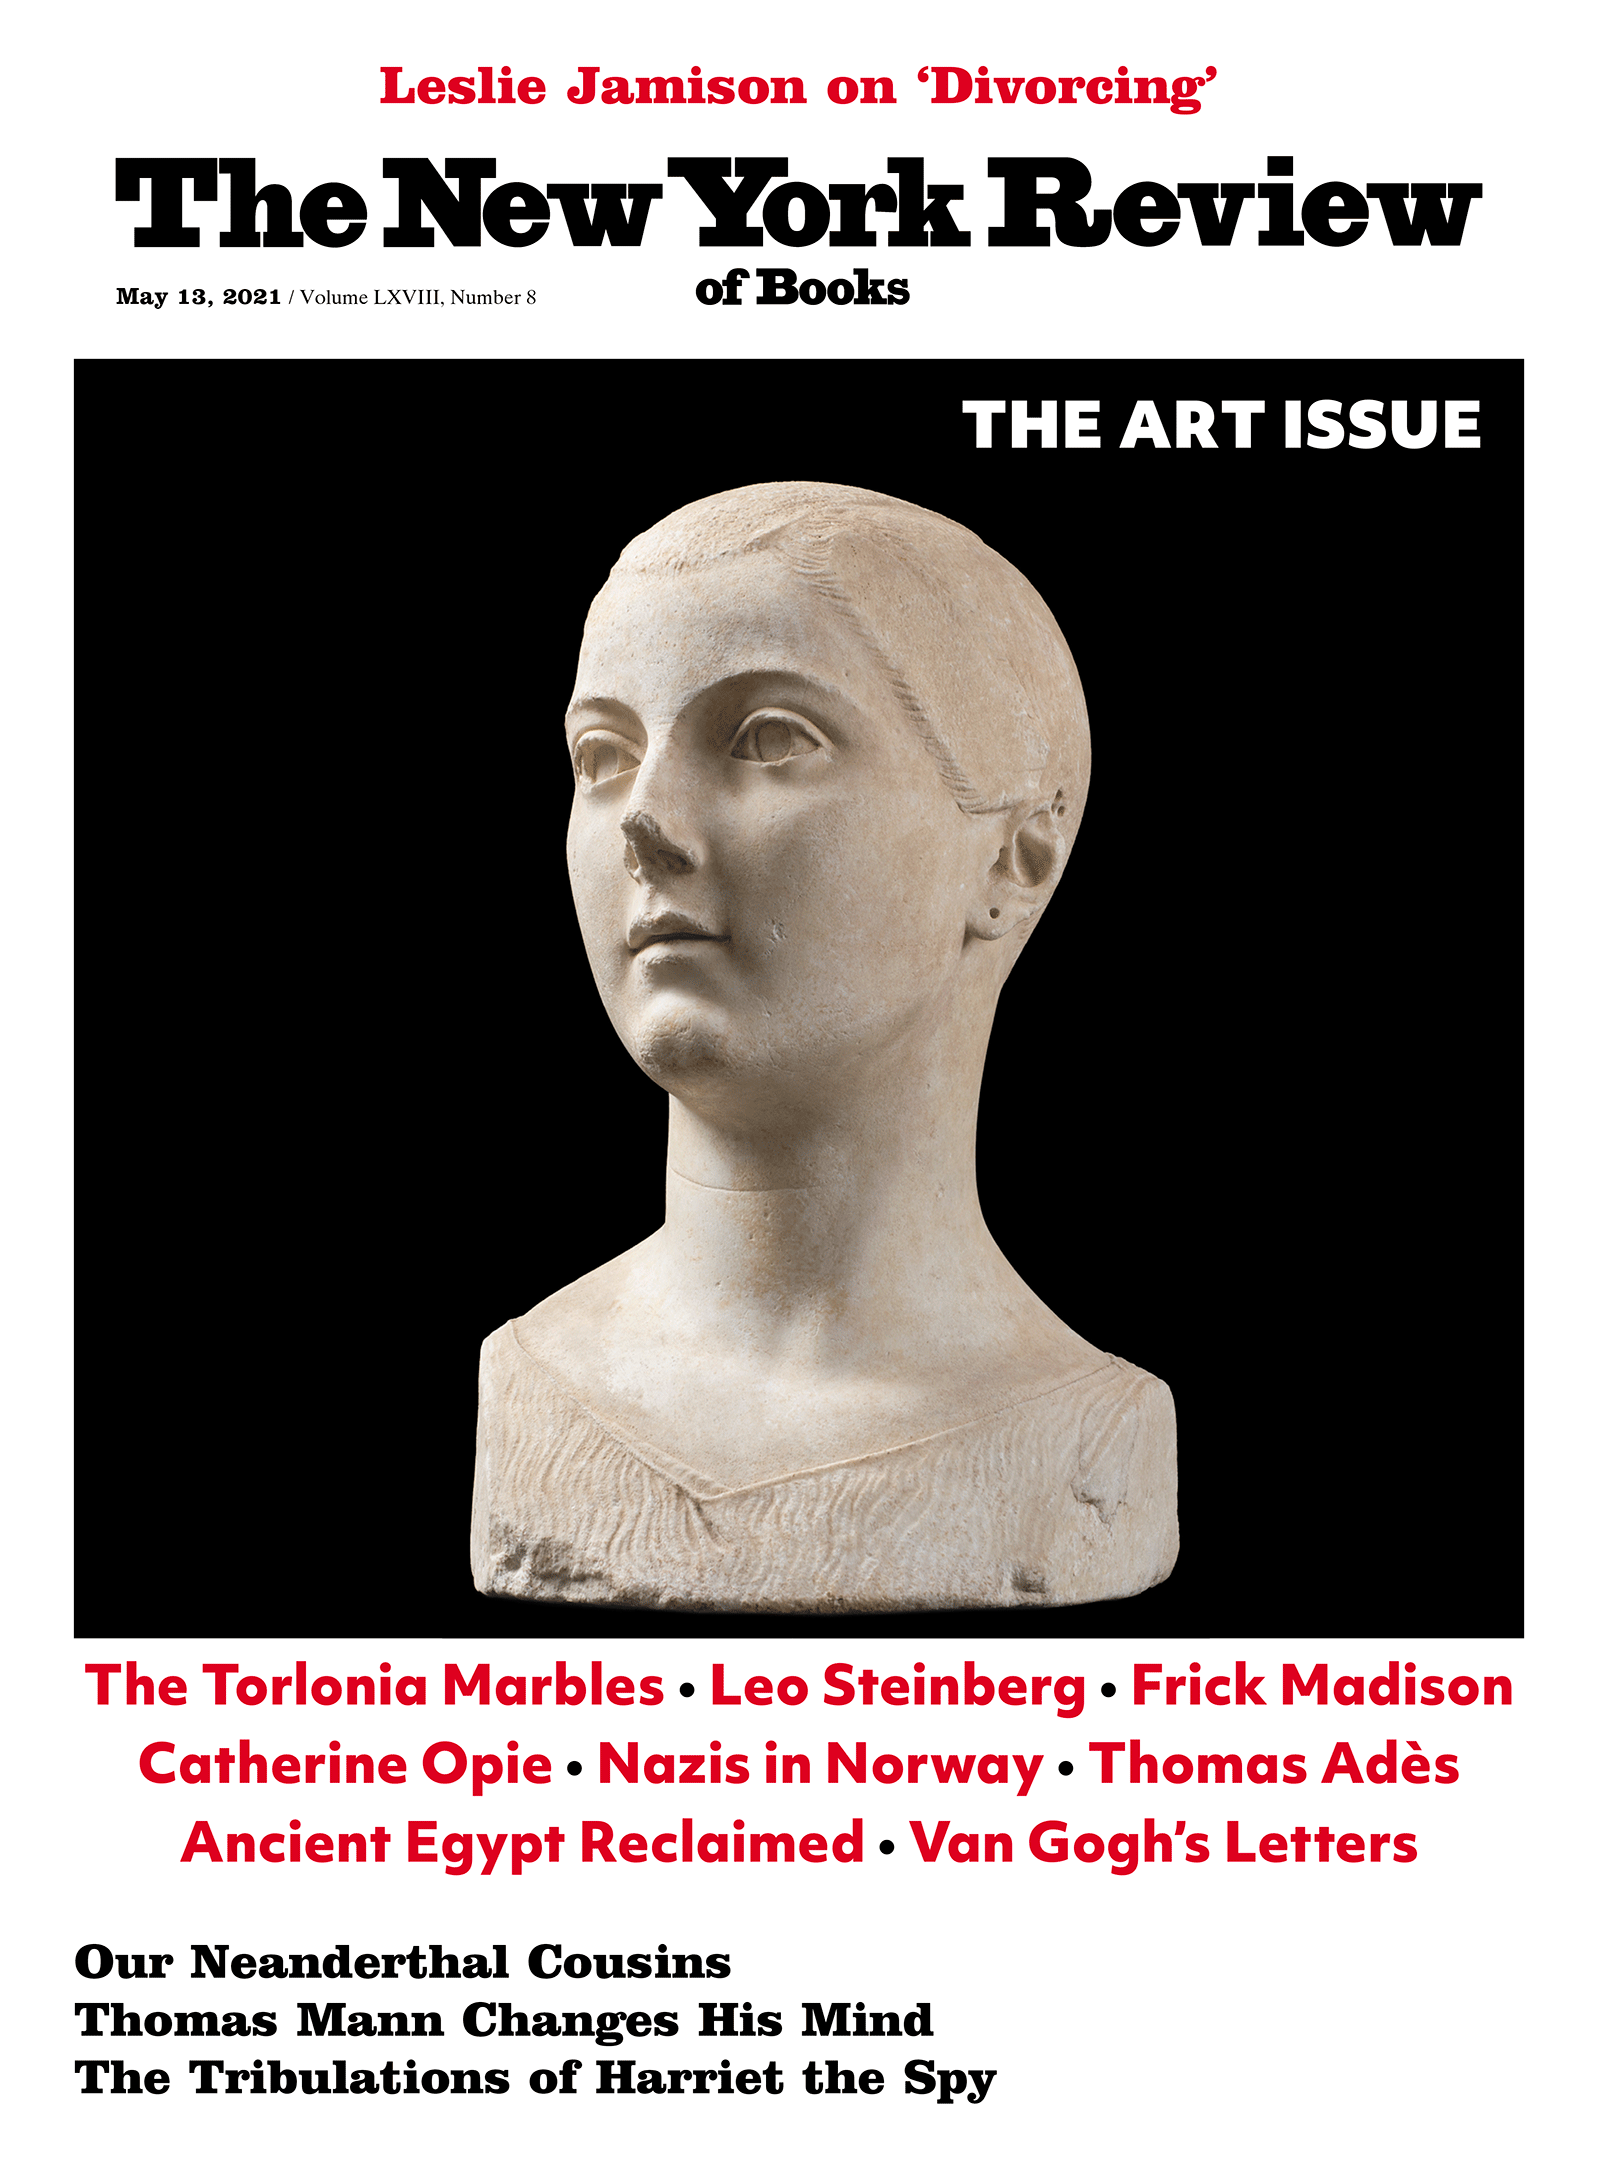 Image of the May 13, 2021 issue cover.